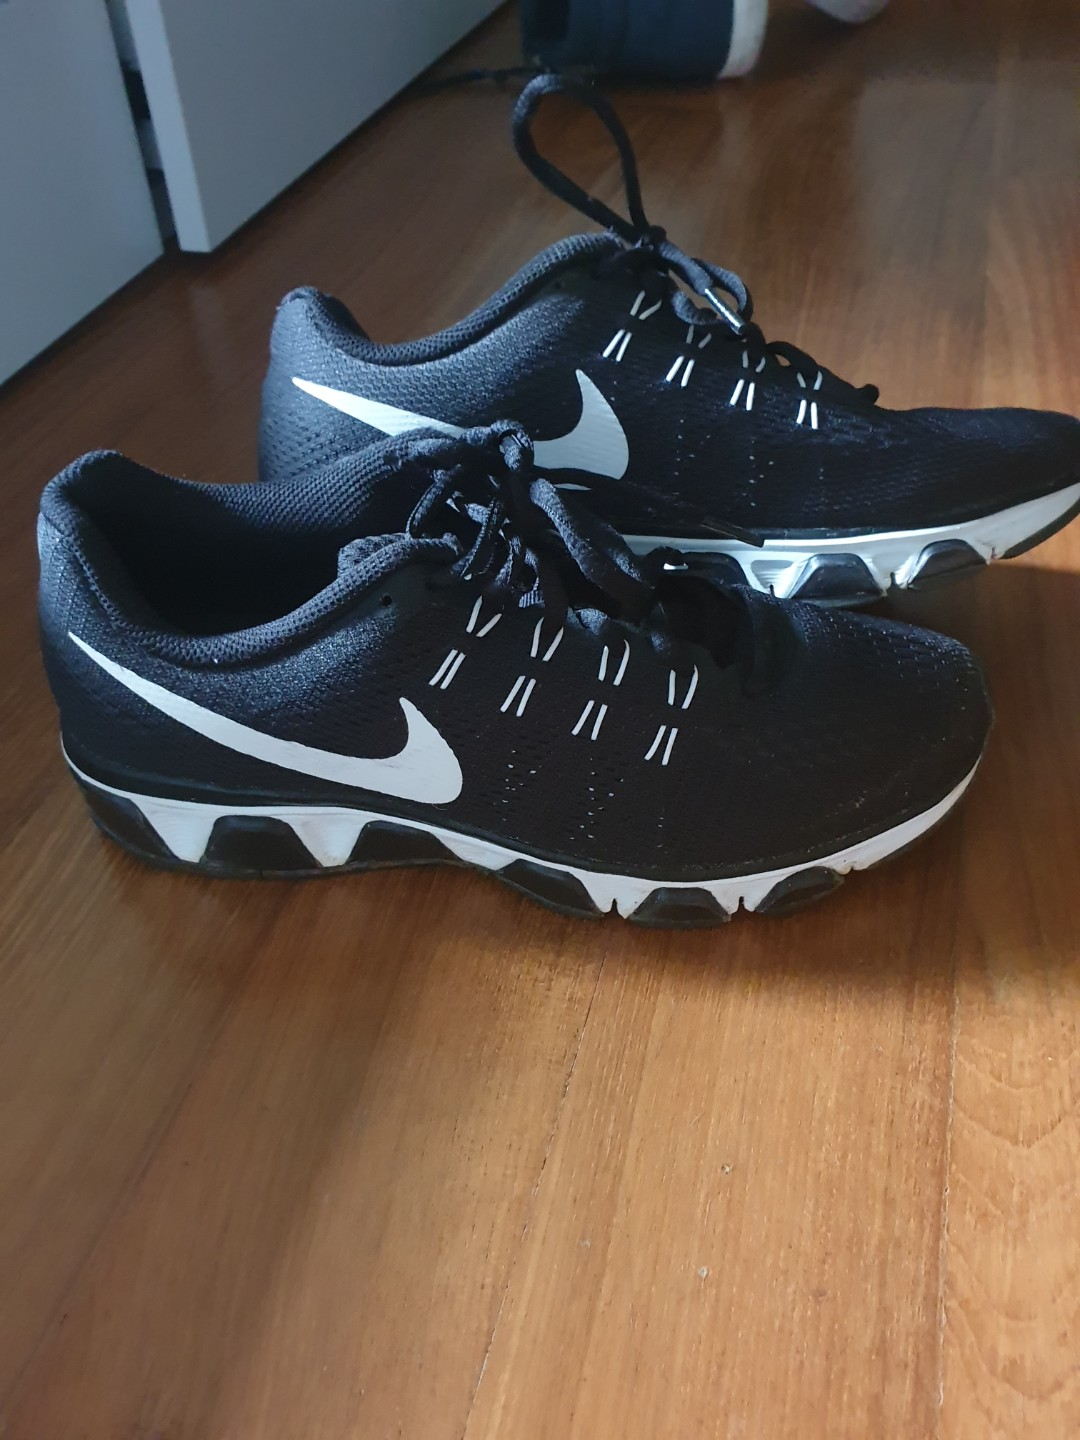 check out 21a46 aa69d Nike air max tailwind 8 shoe